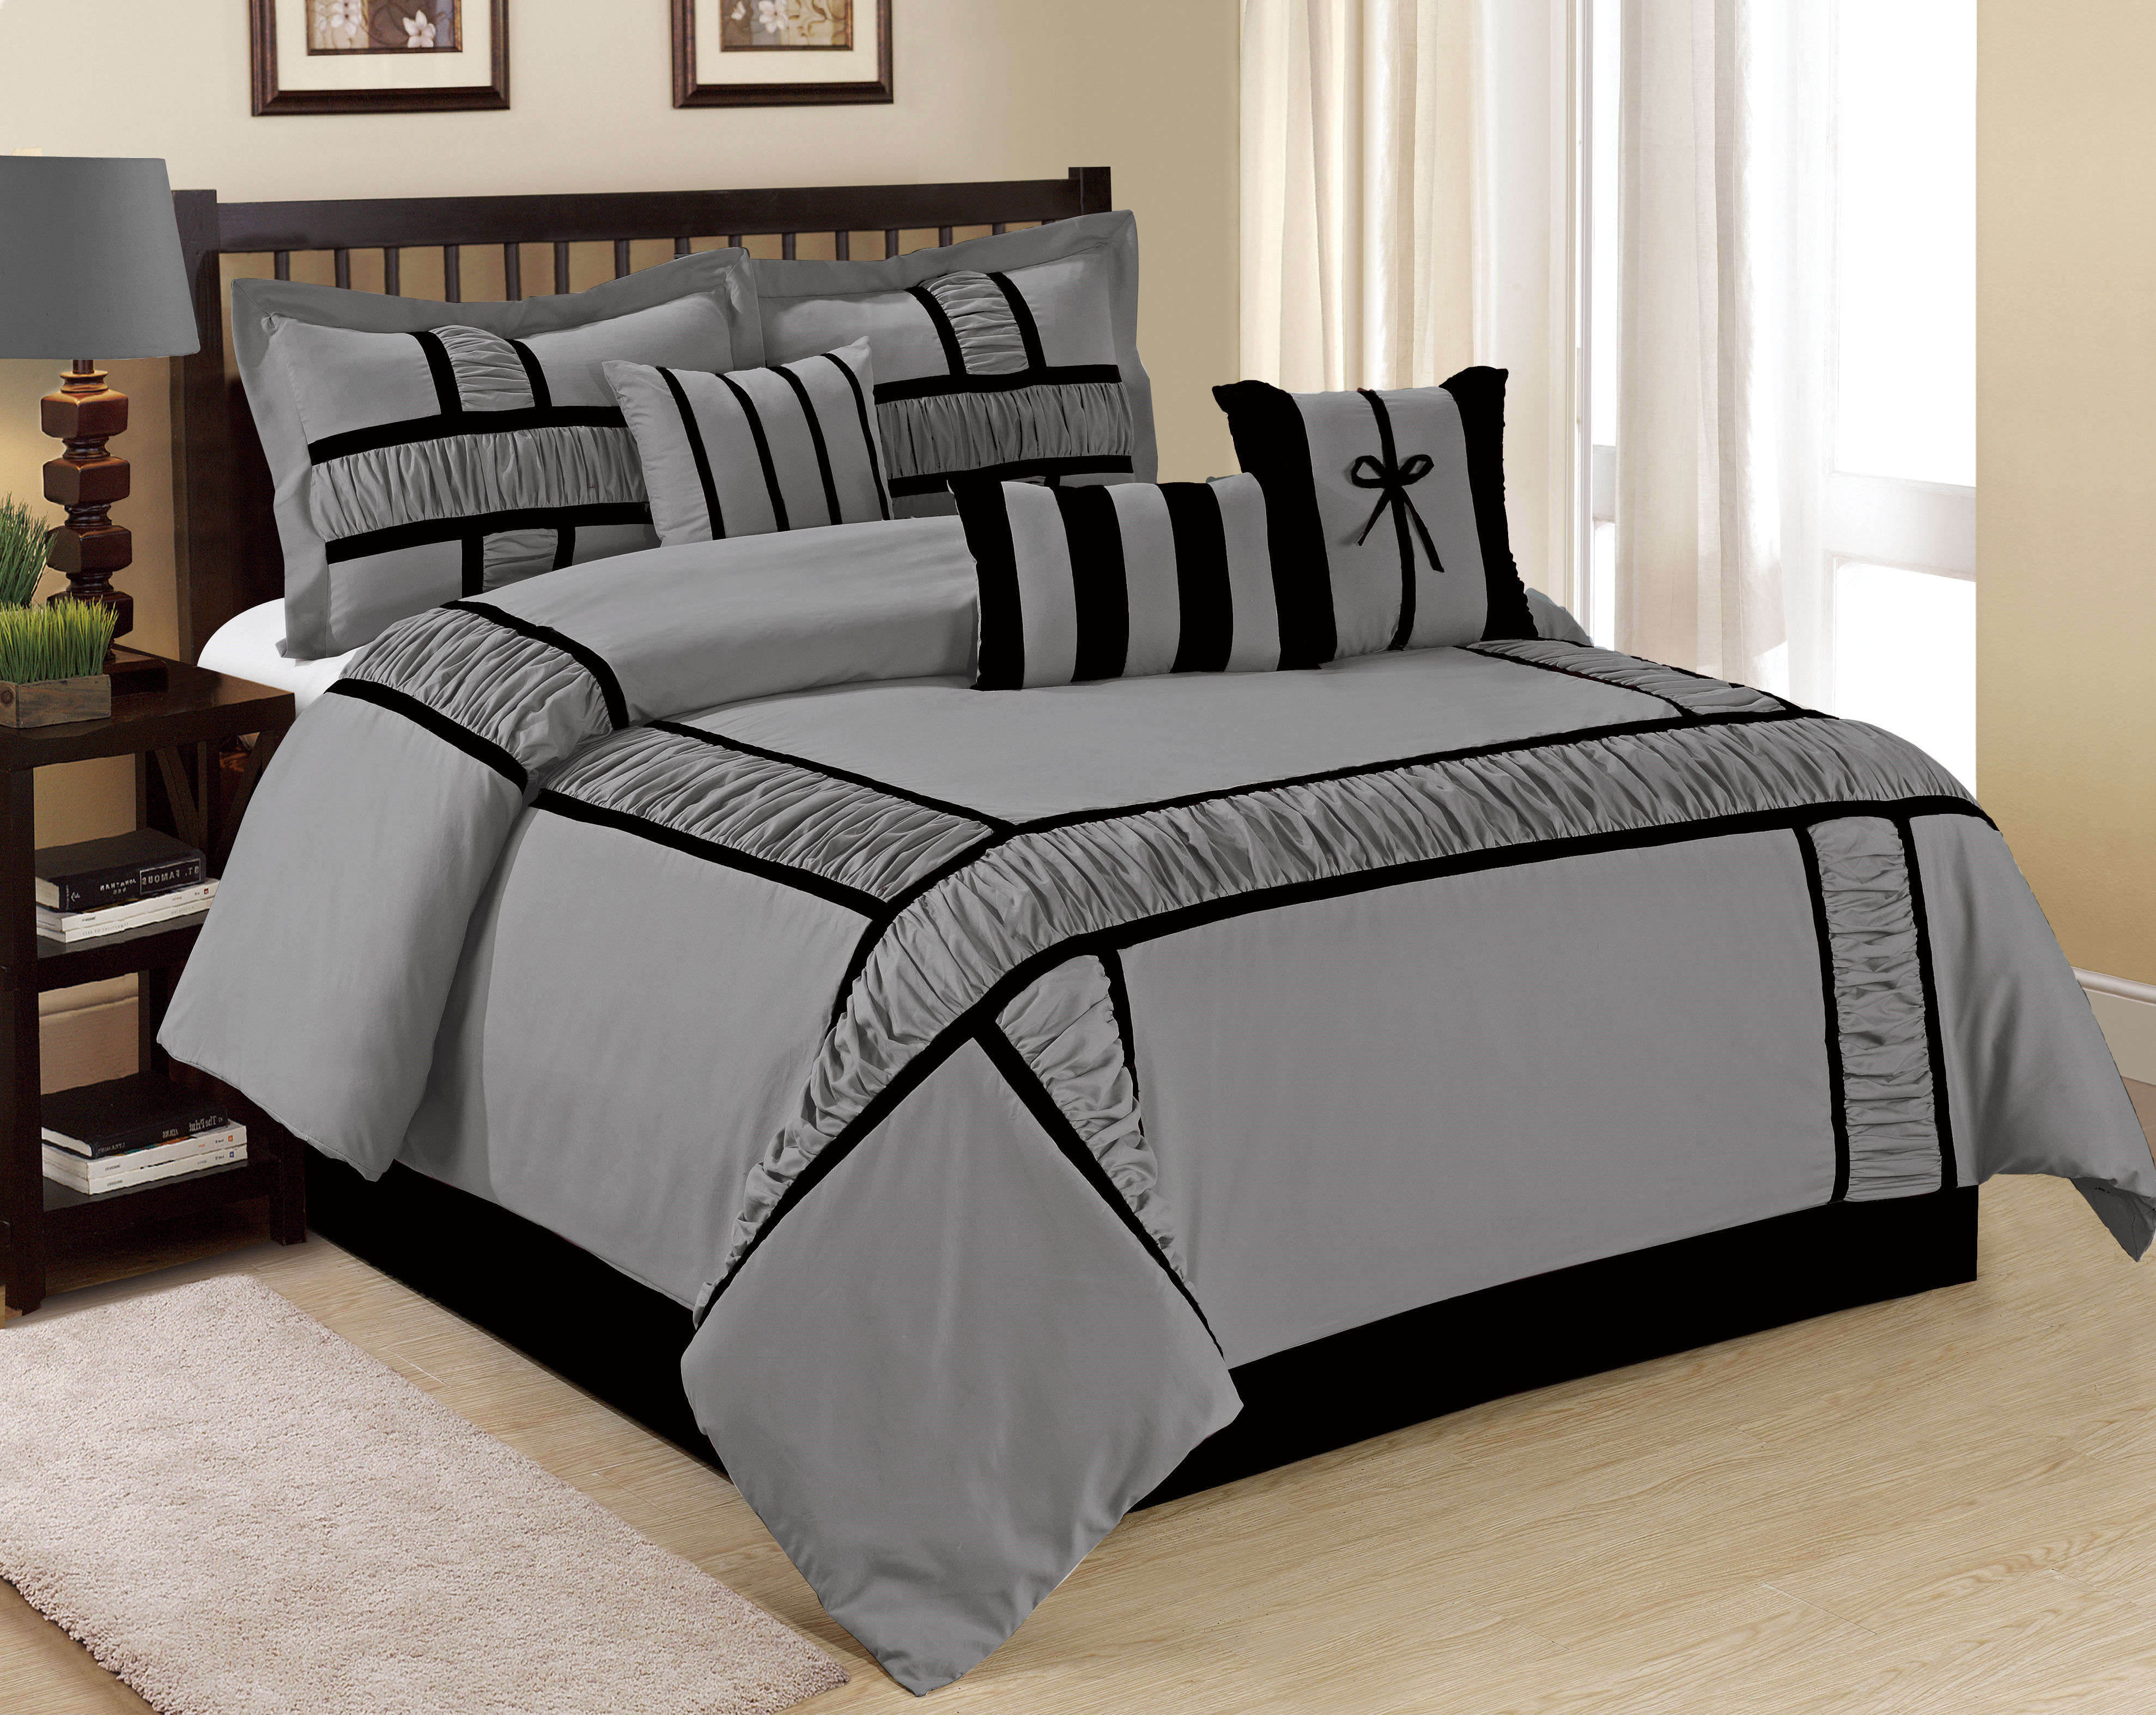 Wt 7 Piece Pieced Ruched Comforter Set Gray Color Size